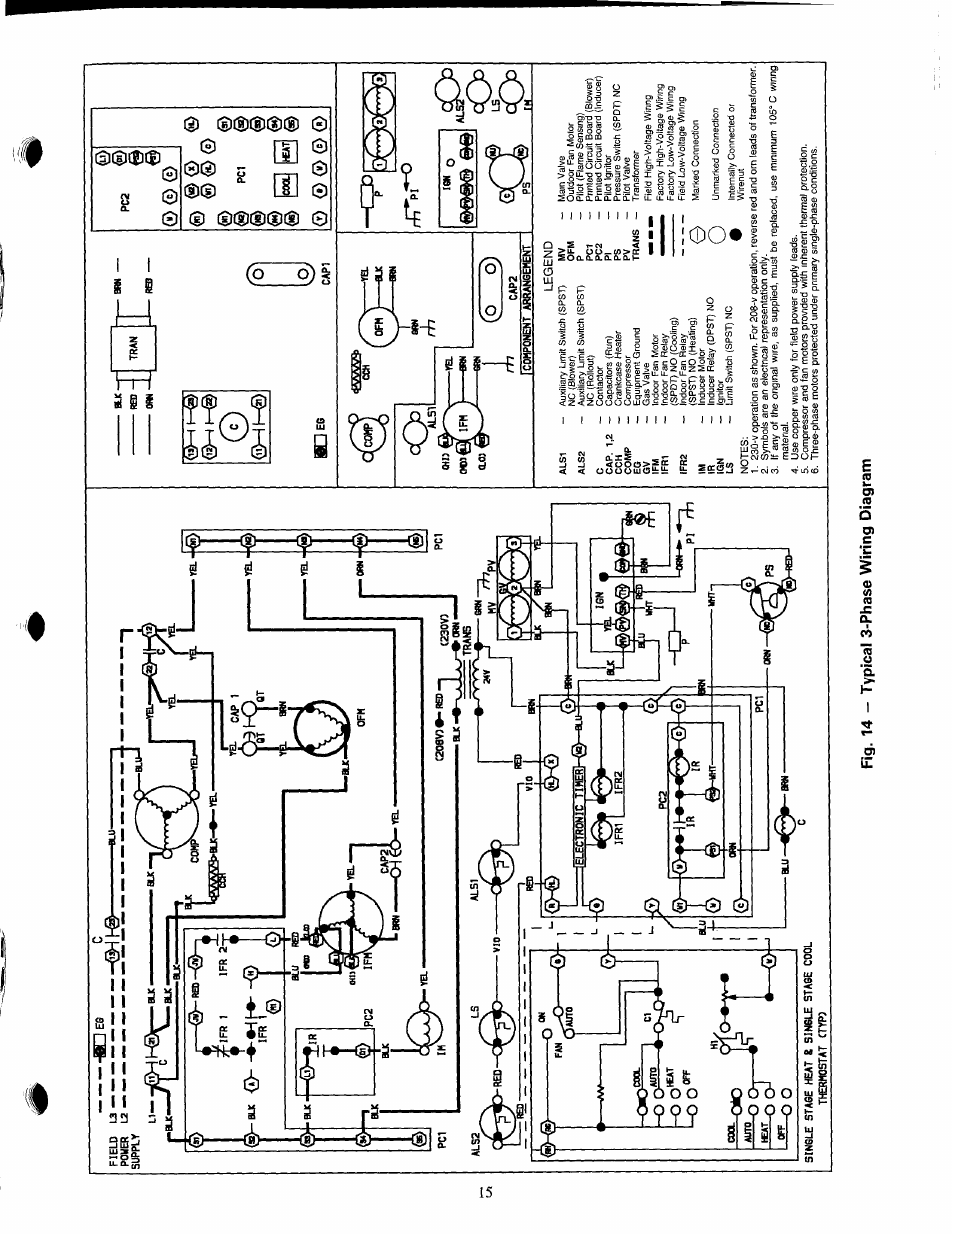 Ductable Ac Wiring Diagram Gandul 45 77 79 119 Emejing Carrier Air Conditioner Wiring Diagram Photos Images For Ductable Ac Wiring Diagram Carrier Ac Wiring